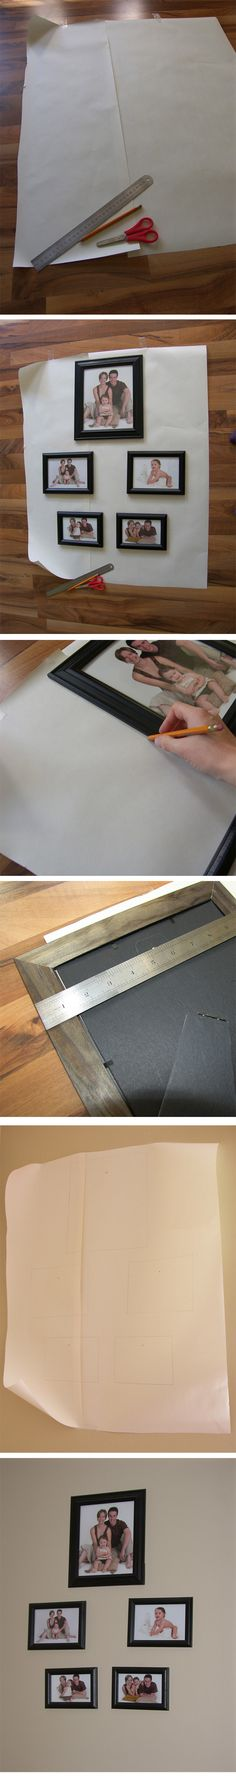 DIY ::  How to arrange and hang multiple frames :: big paper, arrange, draw the outlines, mark nail spots, put paper on the wall, put nails, remove paper ( http://thediydreamer.blogspot.ca/2011/09/how-to-hang-multiple-frames.html )